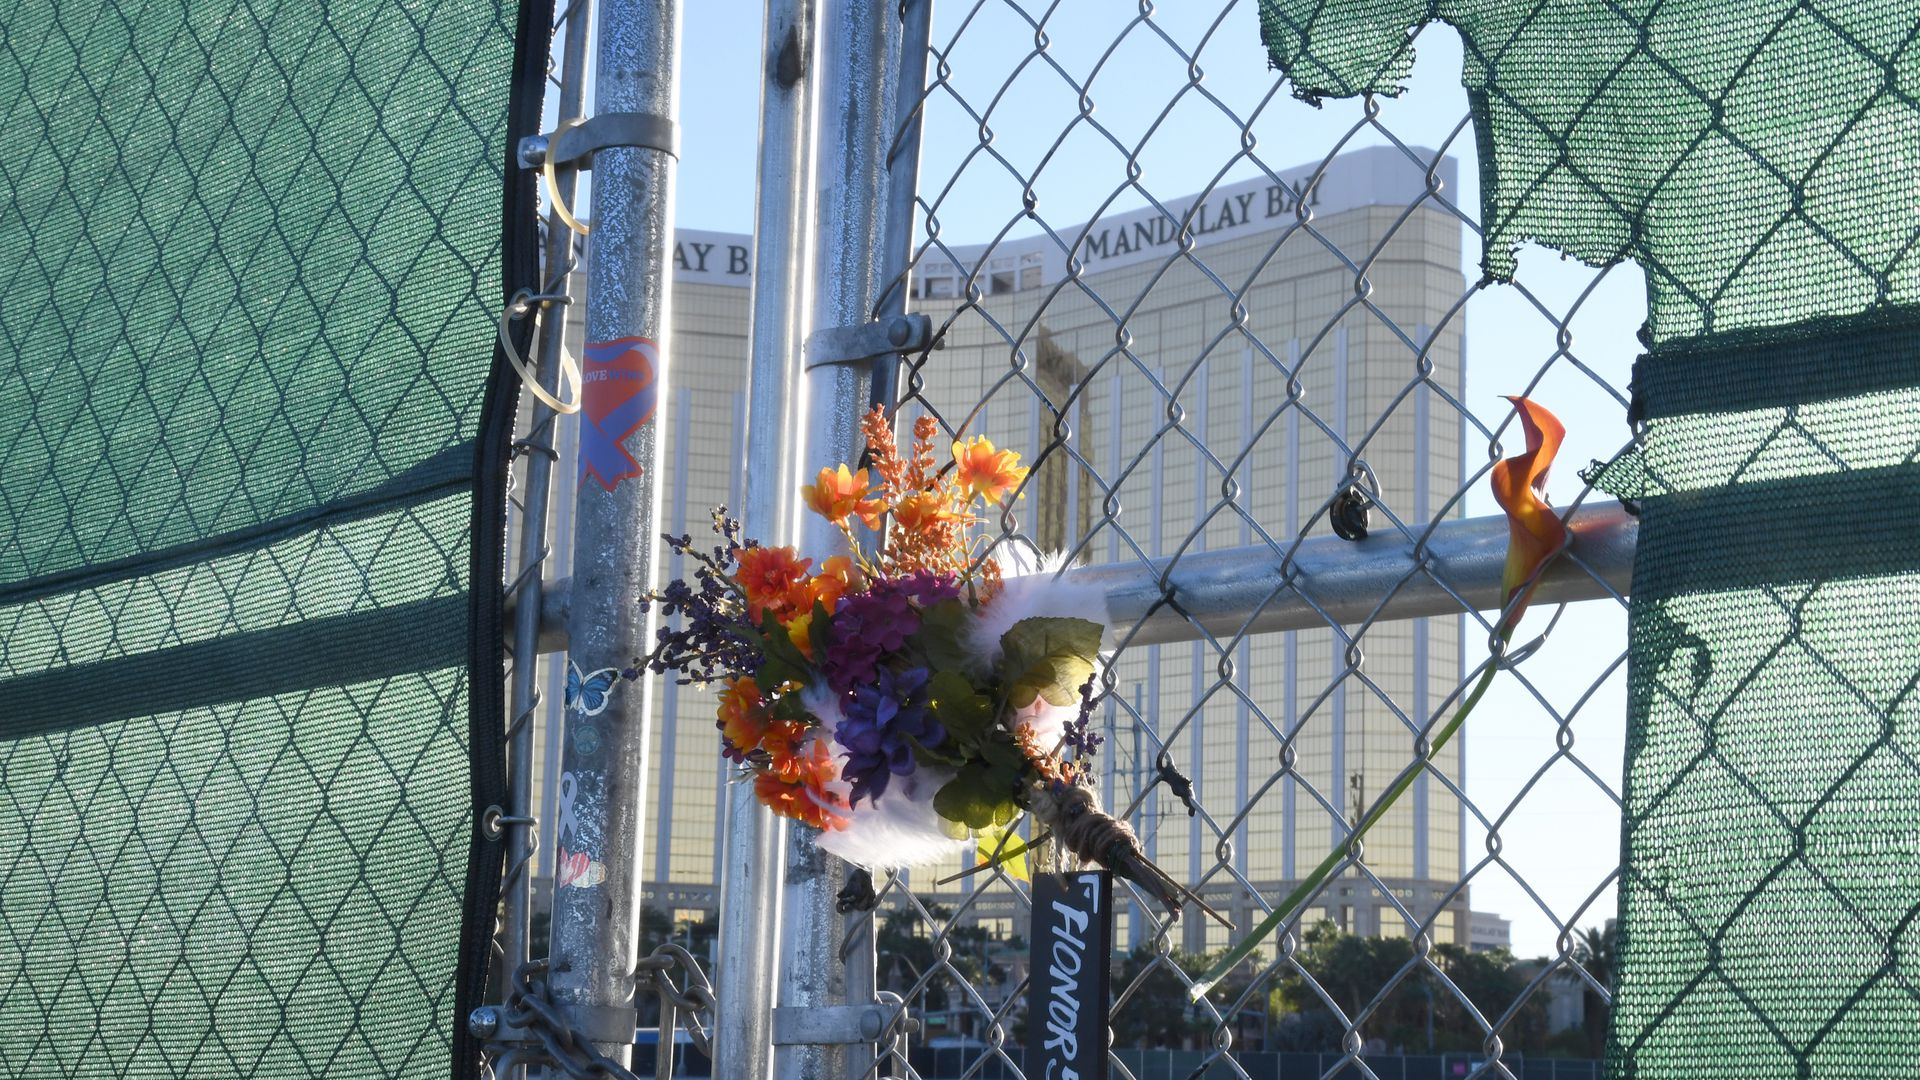 Flowers in front of the Mandala Bay hotel to remember the 2017 Las Vegas shooting victims